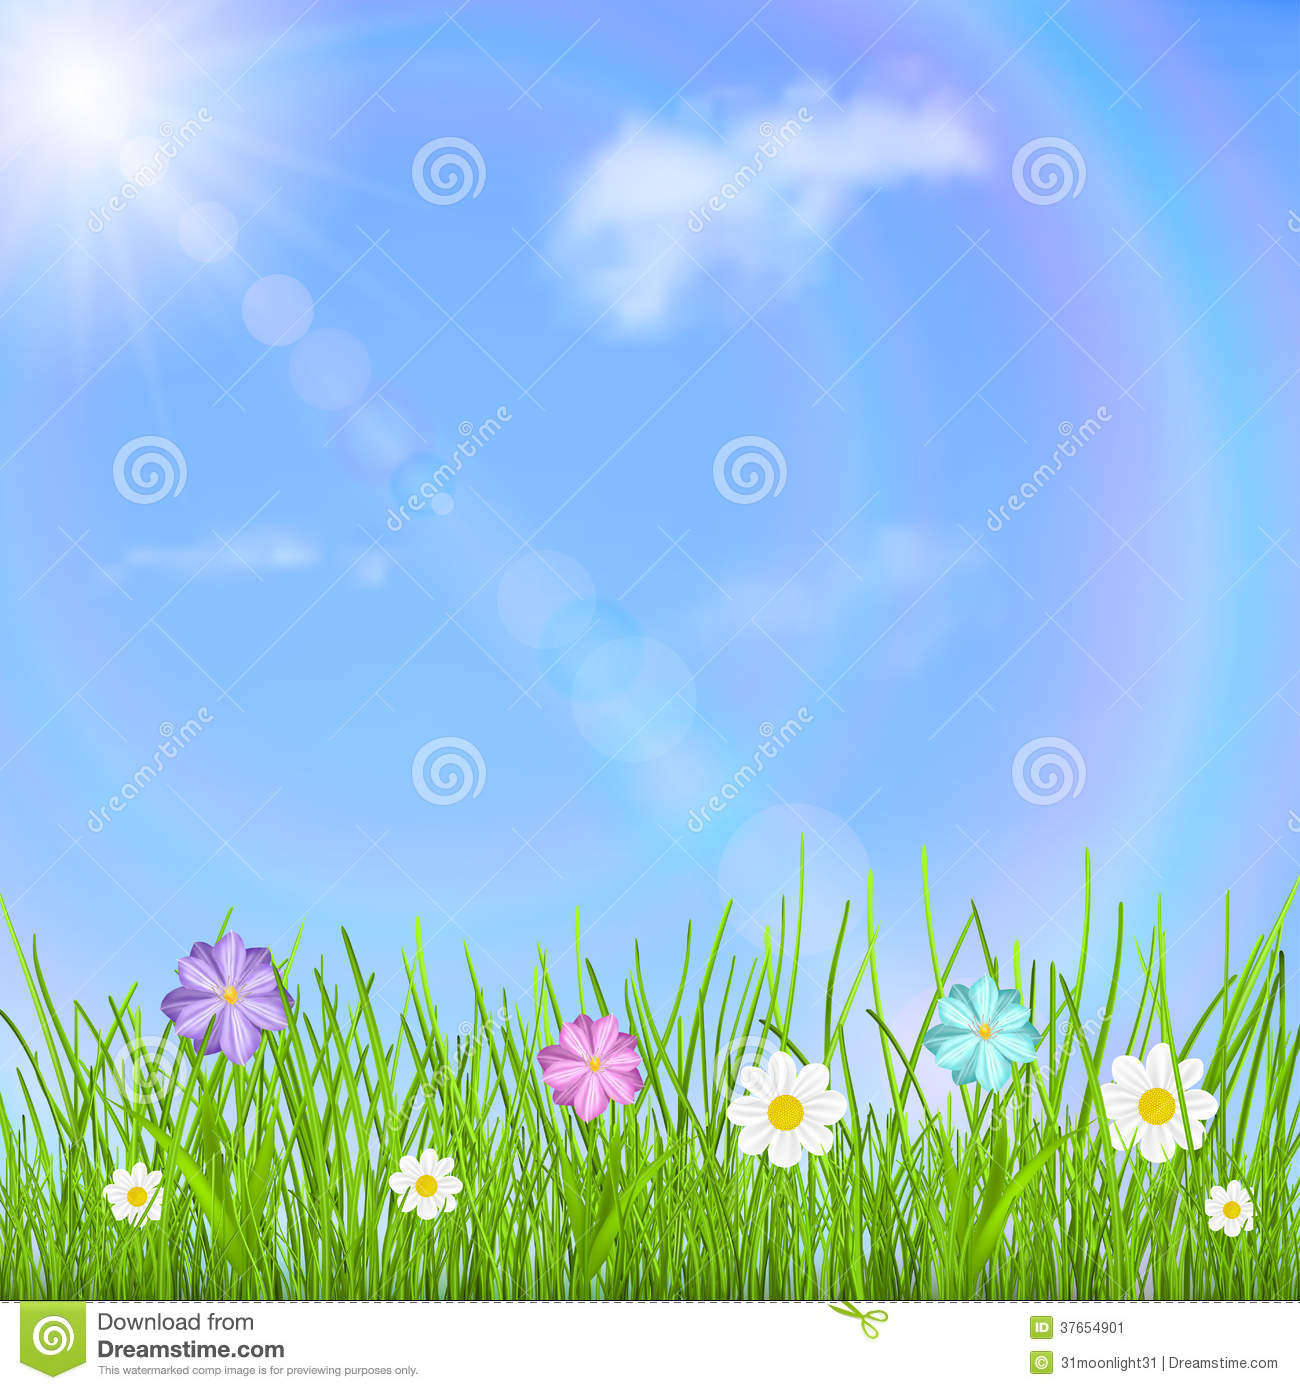 Background with sky, sun, clouds, rainbow, grass and flowers